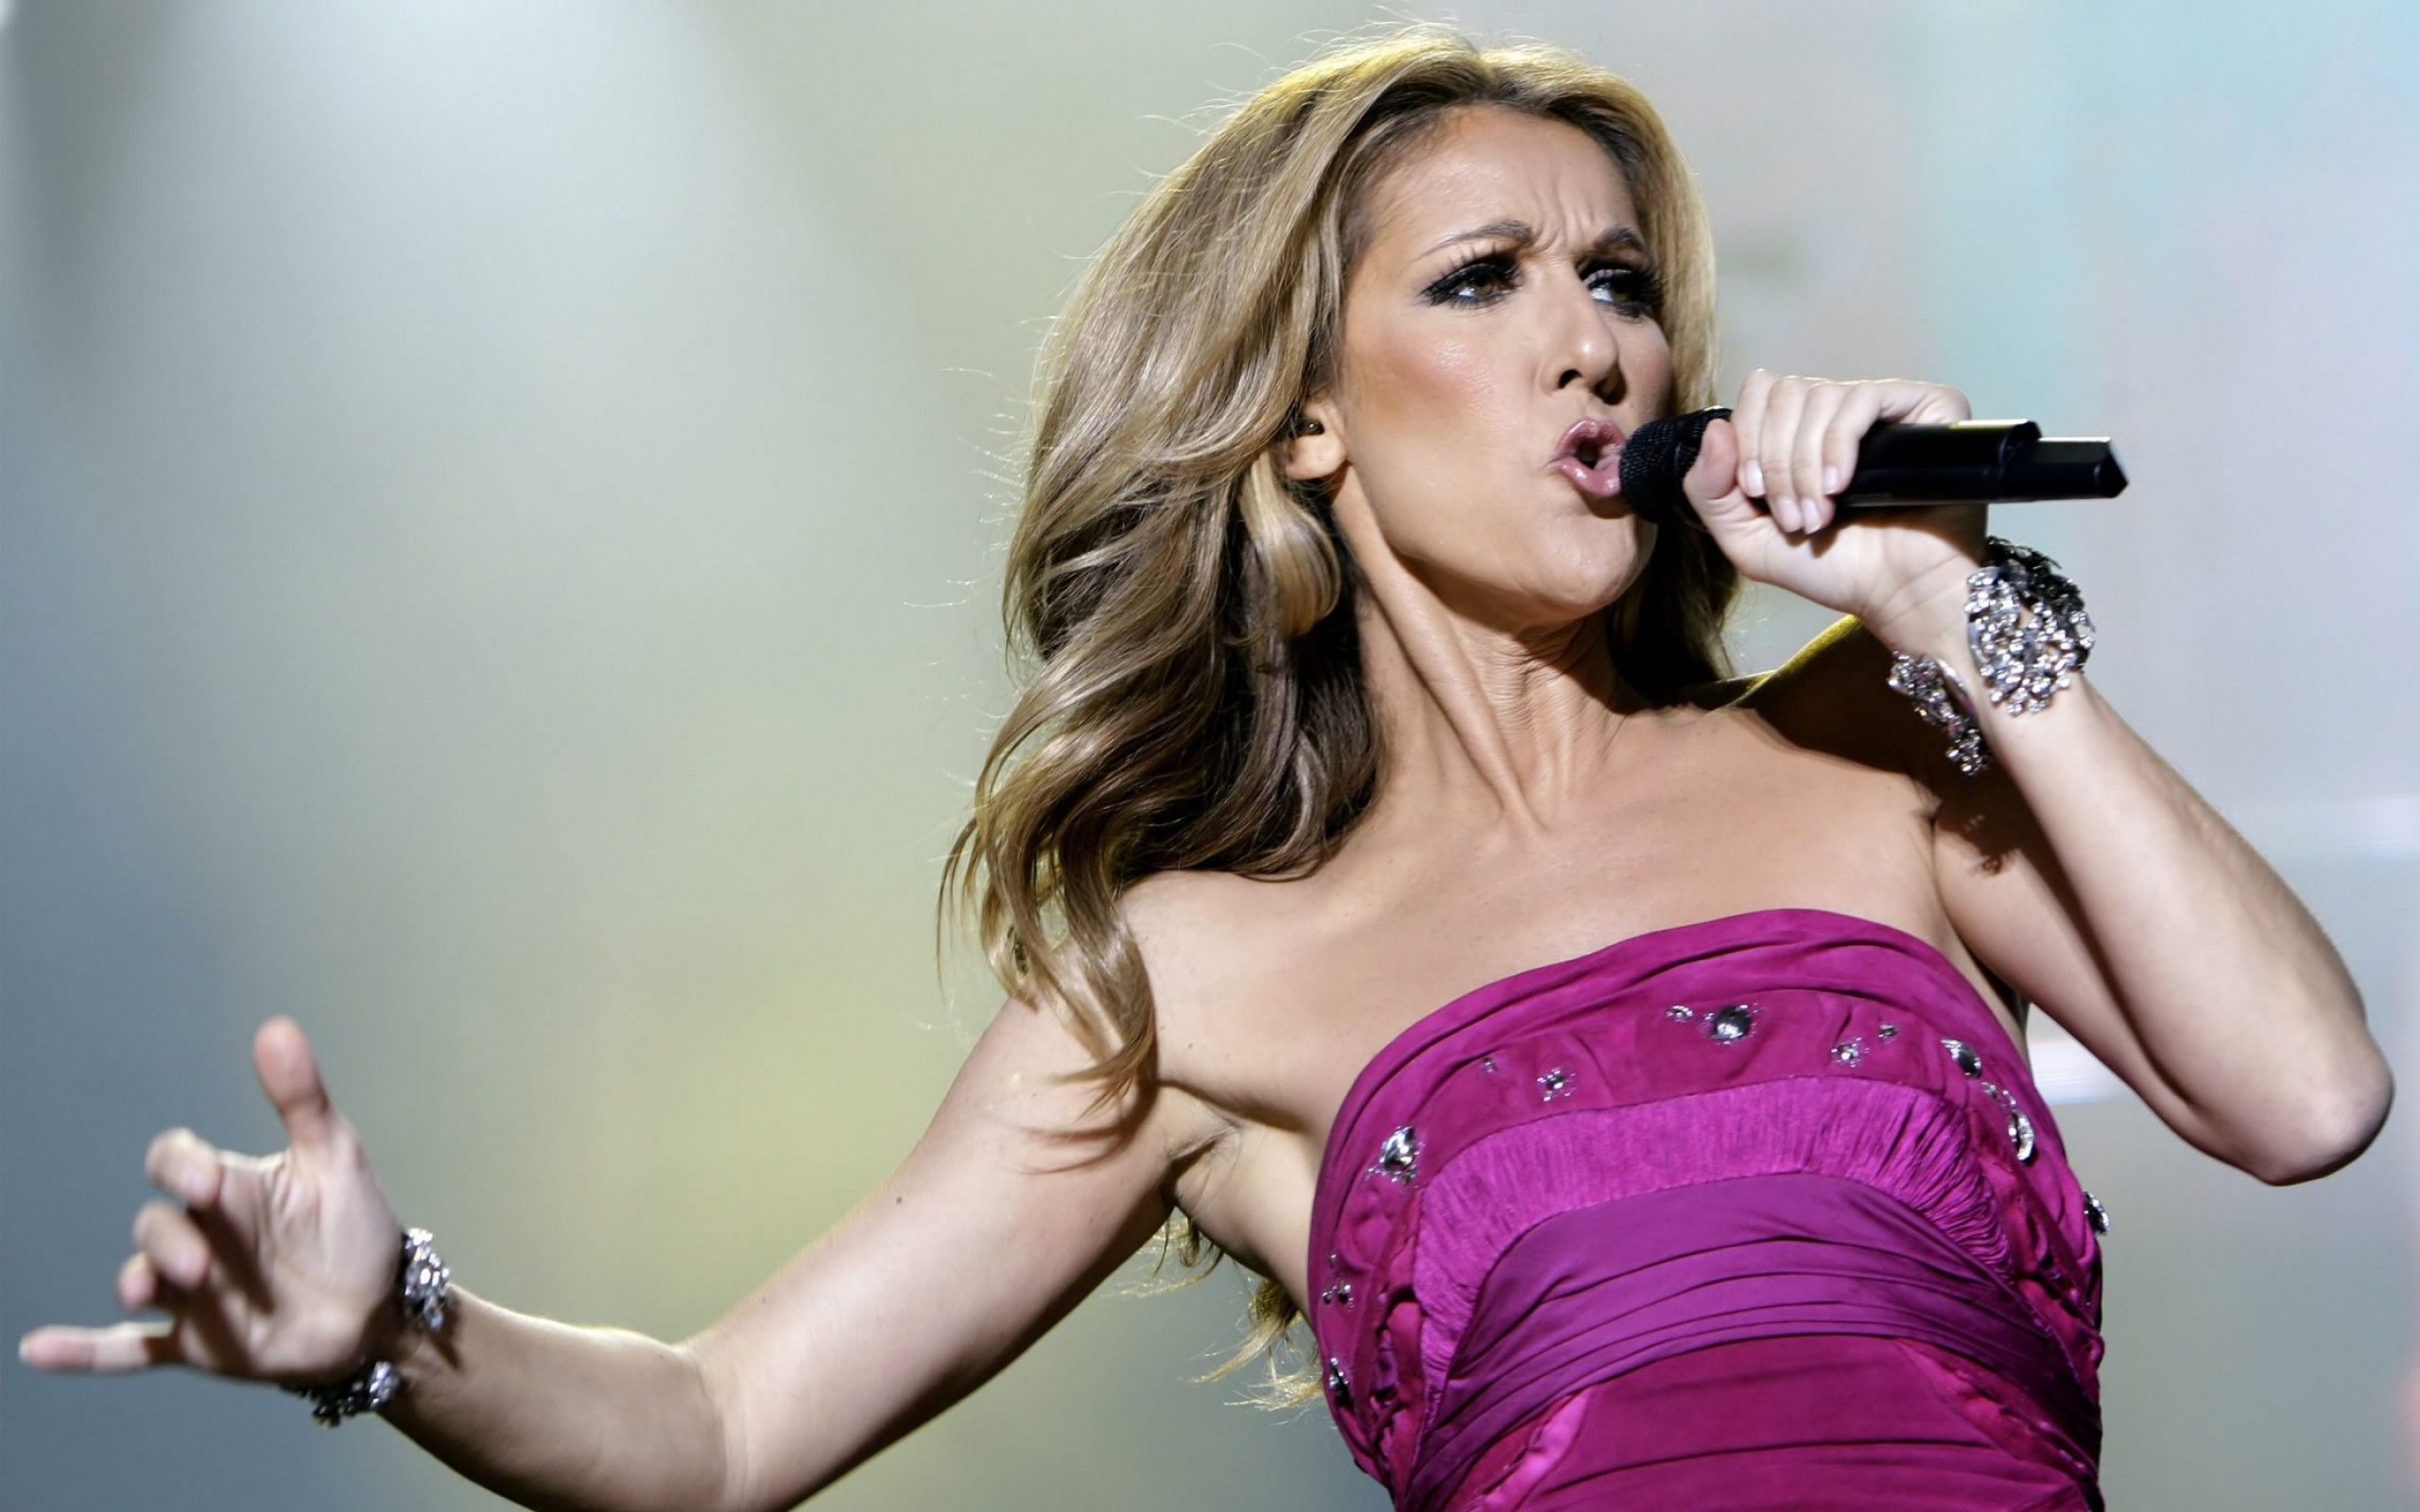 Celine Dion Celebrities Hd Wallpapers Download Awesome Nice And High Quality Hd Wallpapers From Backgroun Celine Dion Celine Dion Tickets Young Celebrities